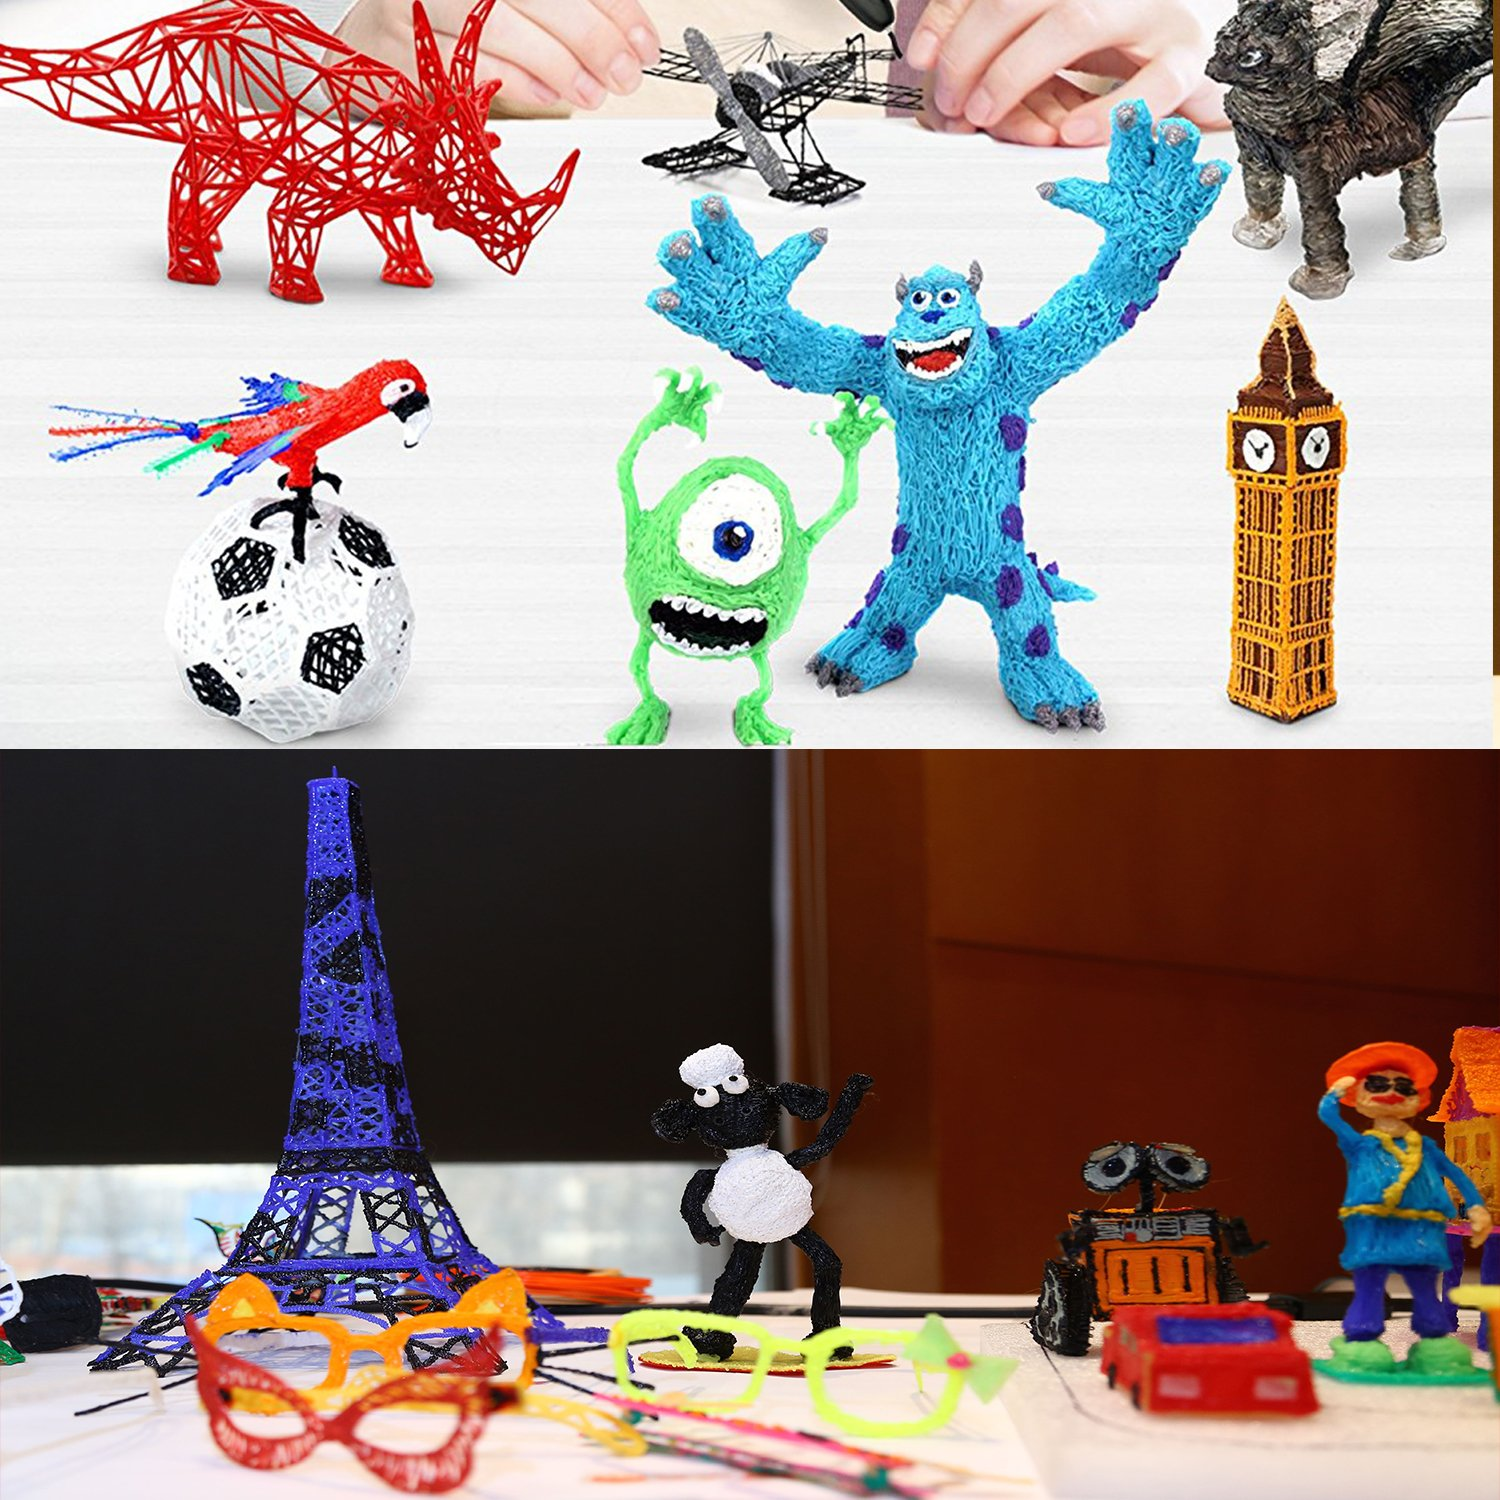 3D Pen,THINKIDEA 3D Printing Pen Compatible with 1.75mm Low Temperature PCL Filament,Newest Gift Toy for Kids and Adults,Childrens Safety Create Doodle DIY Arts and Crafts,No Smell